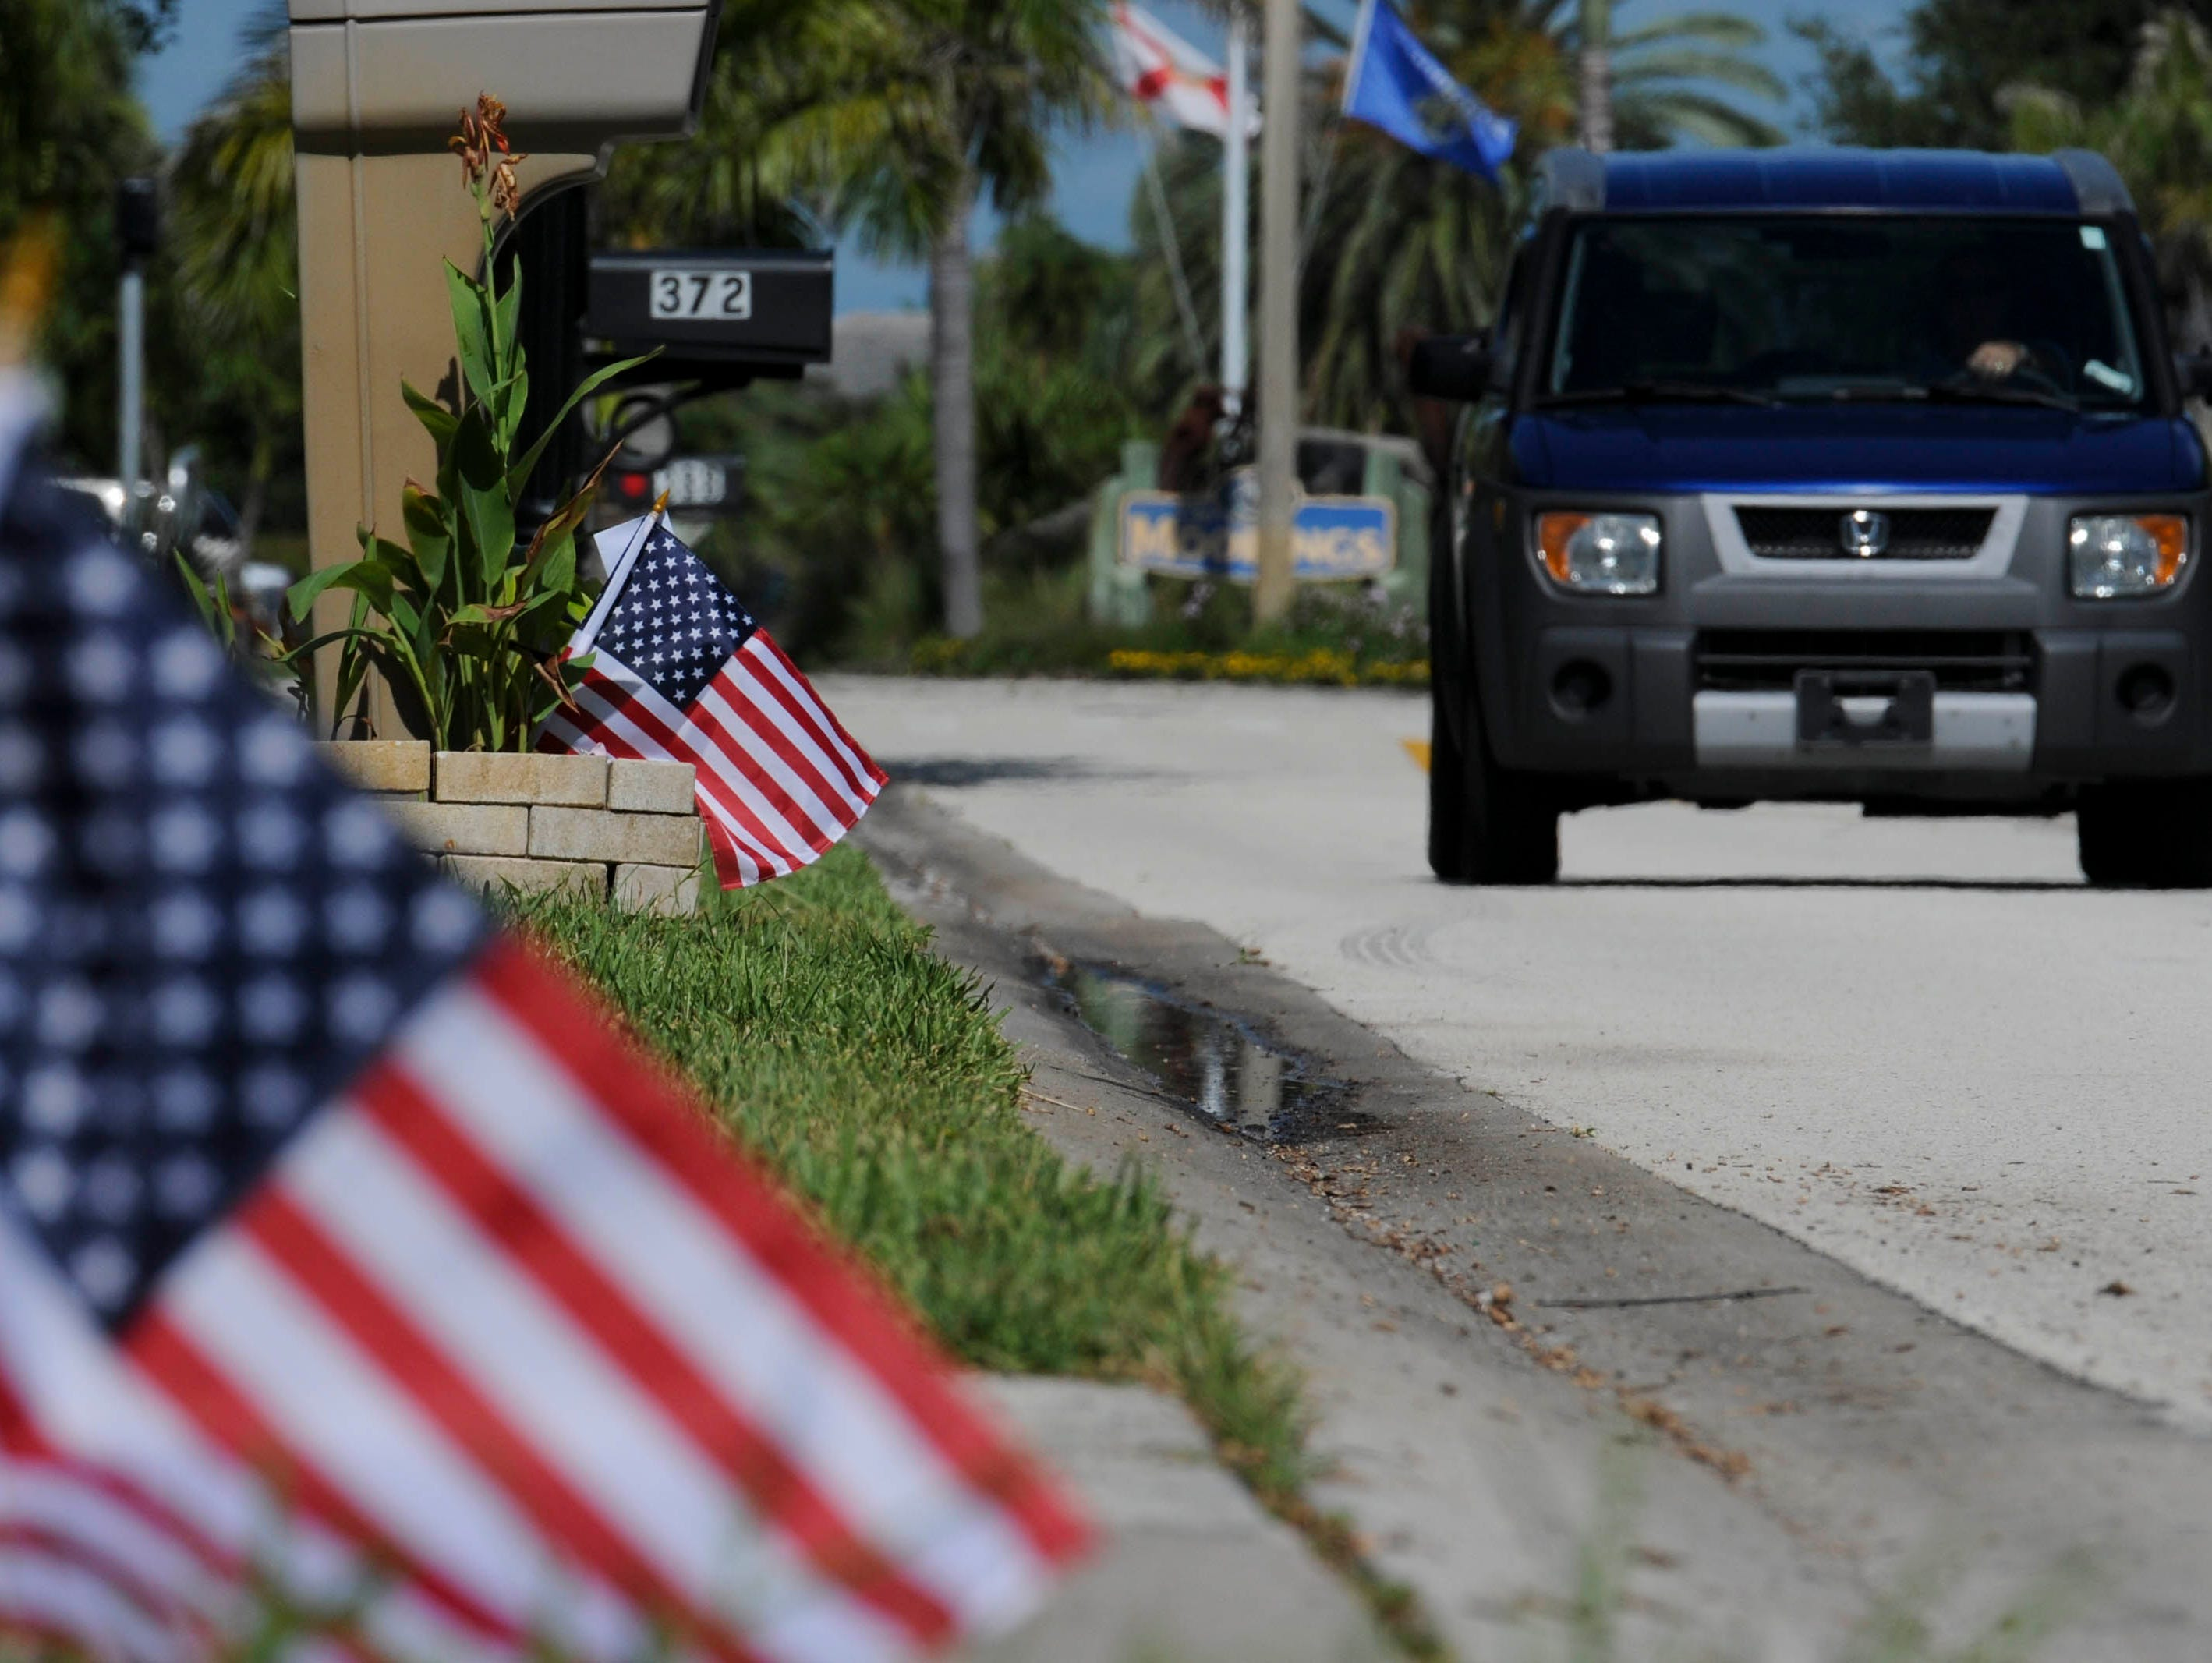 American flags line the streets so Satellite Beach Thursday morning. Students from Satellite High's football and ROTC squads help distribute American flags to town residents as part of a fundraiser for the school.